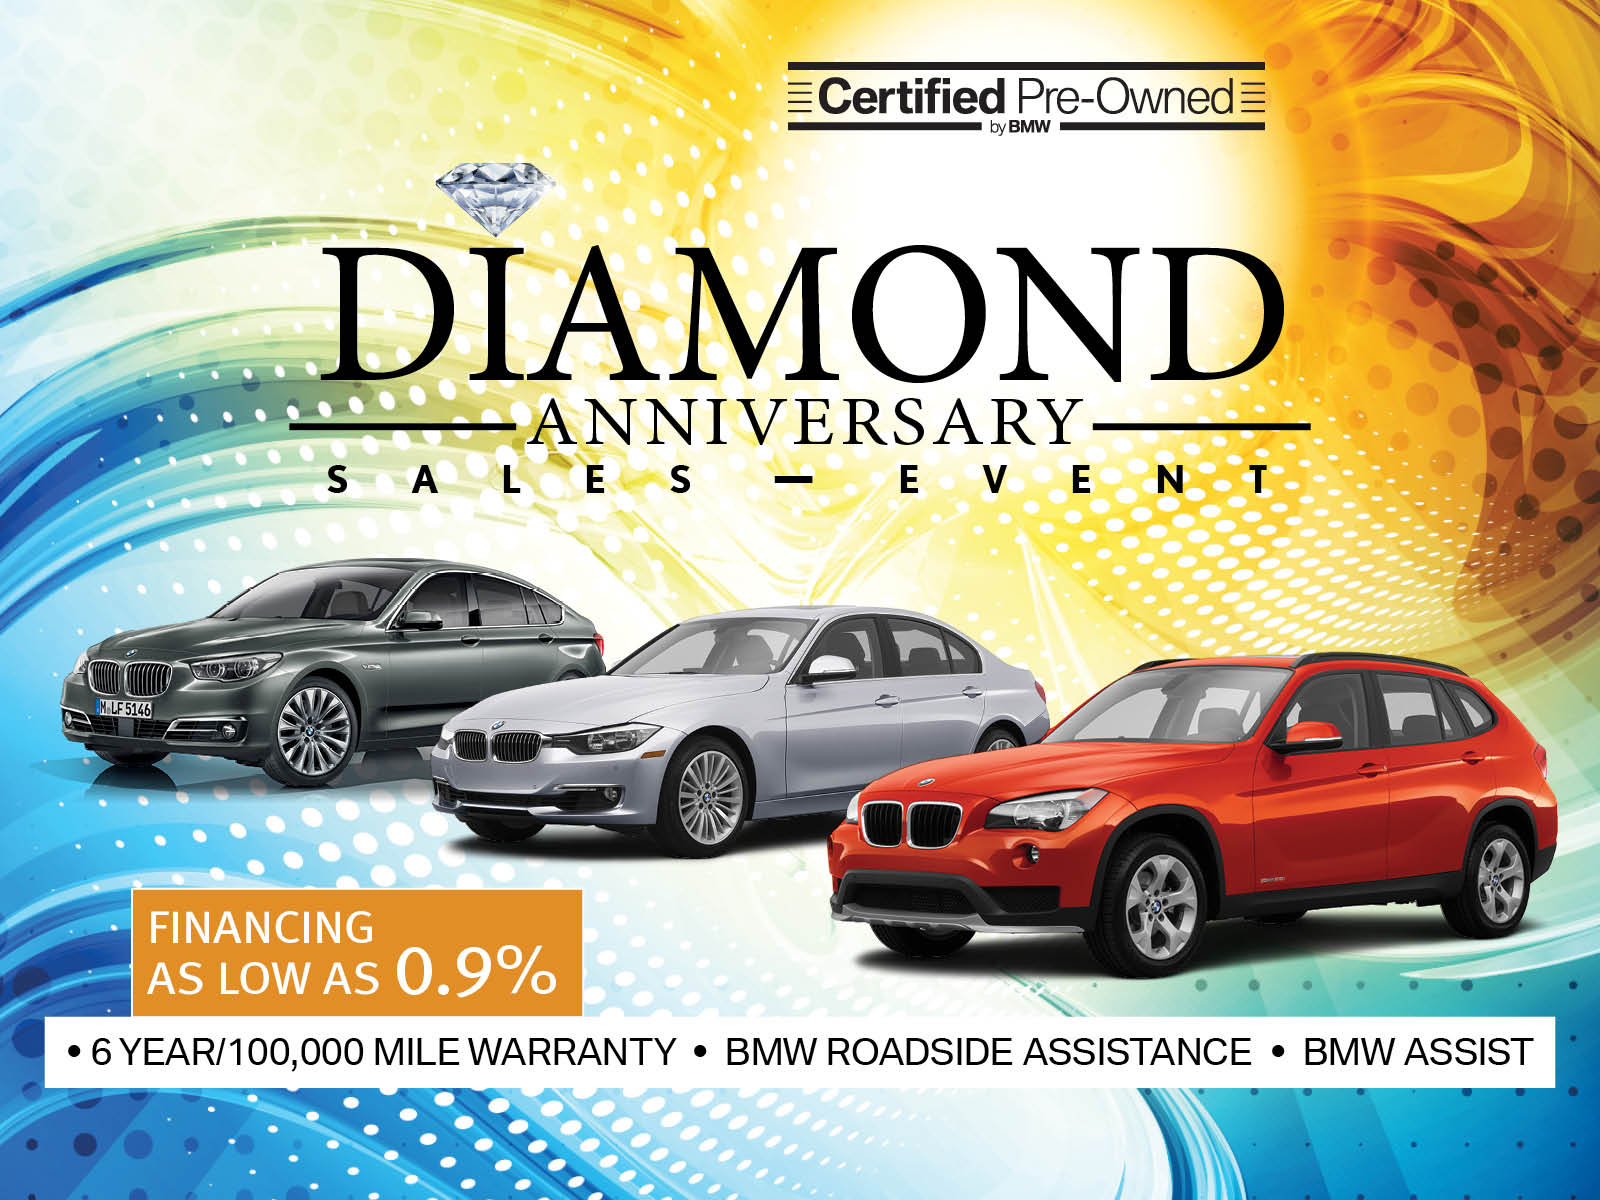 BMW certified pre-owned lease